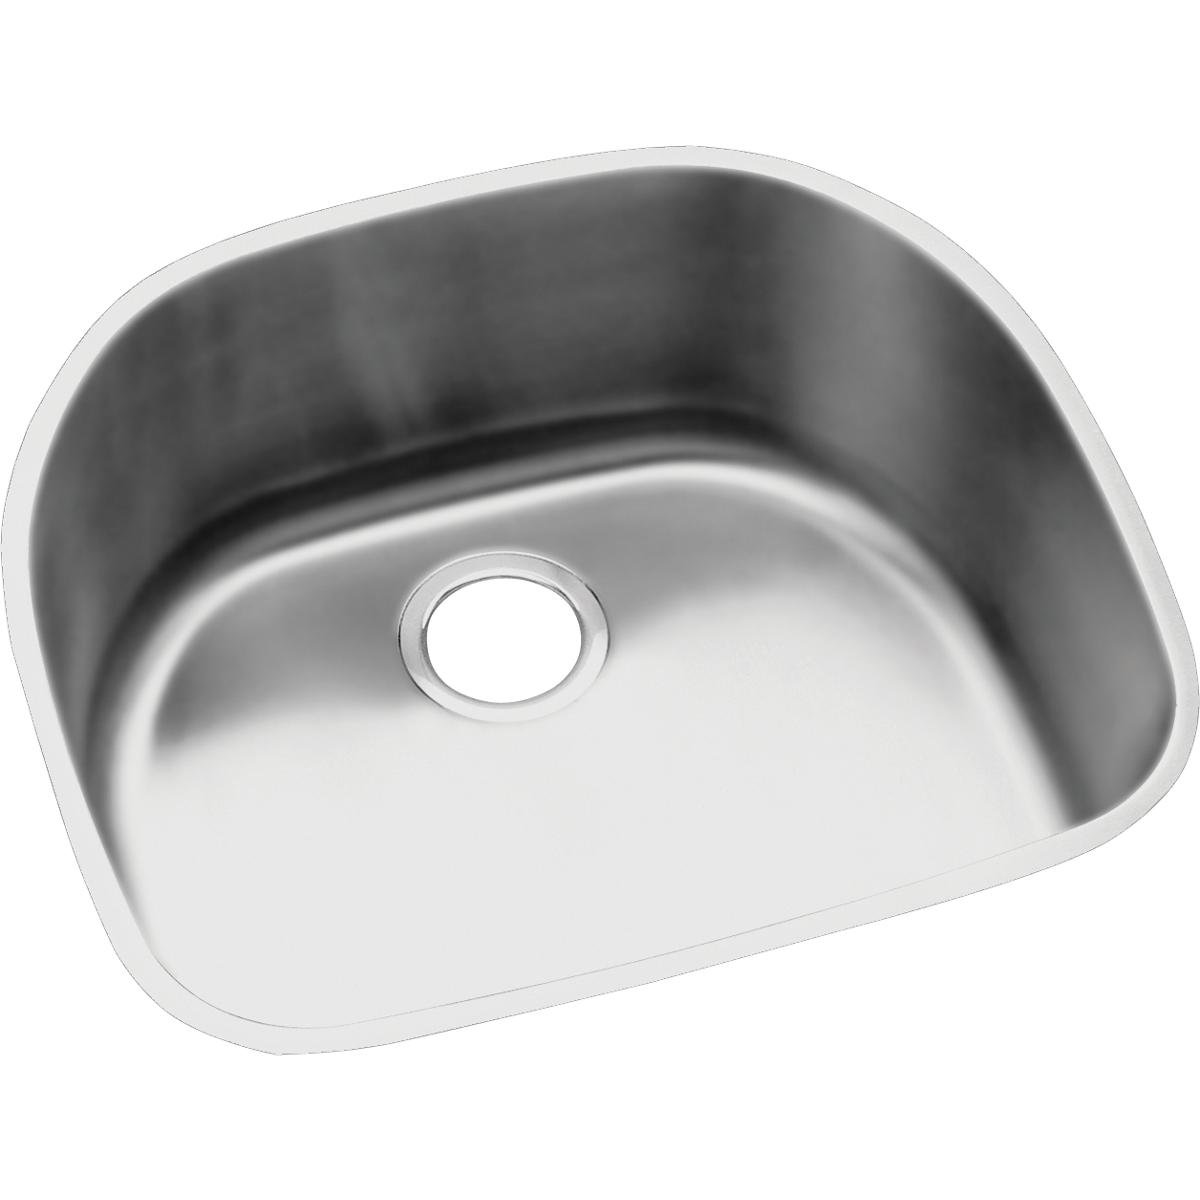 Elkay Lustertone ELUH211810 Single Bowl Undermount Stainless Steel Kitchen Sink